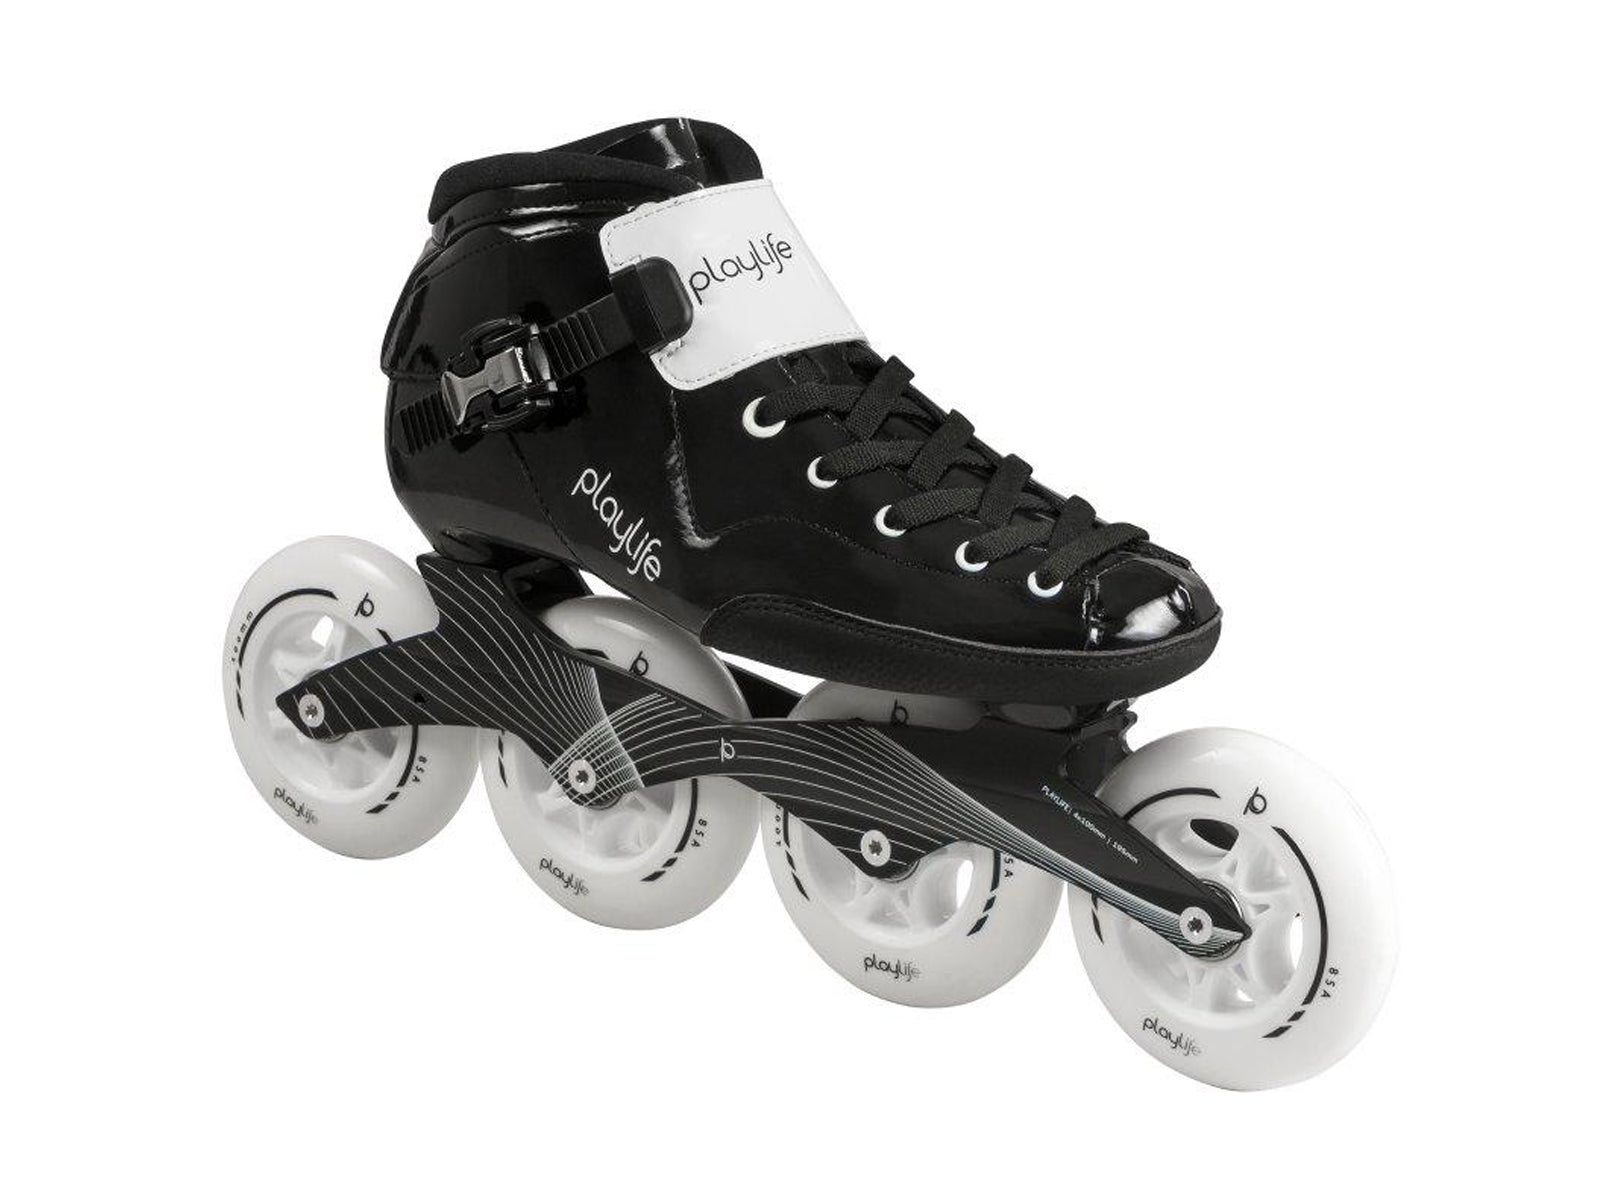 Playlife Performance Inline Speed Skate